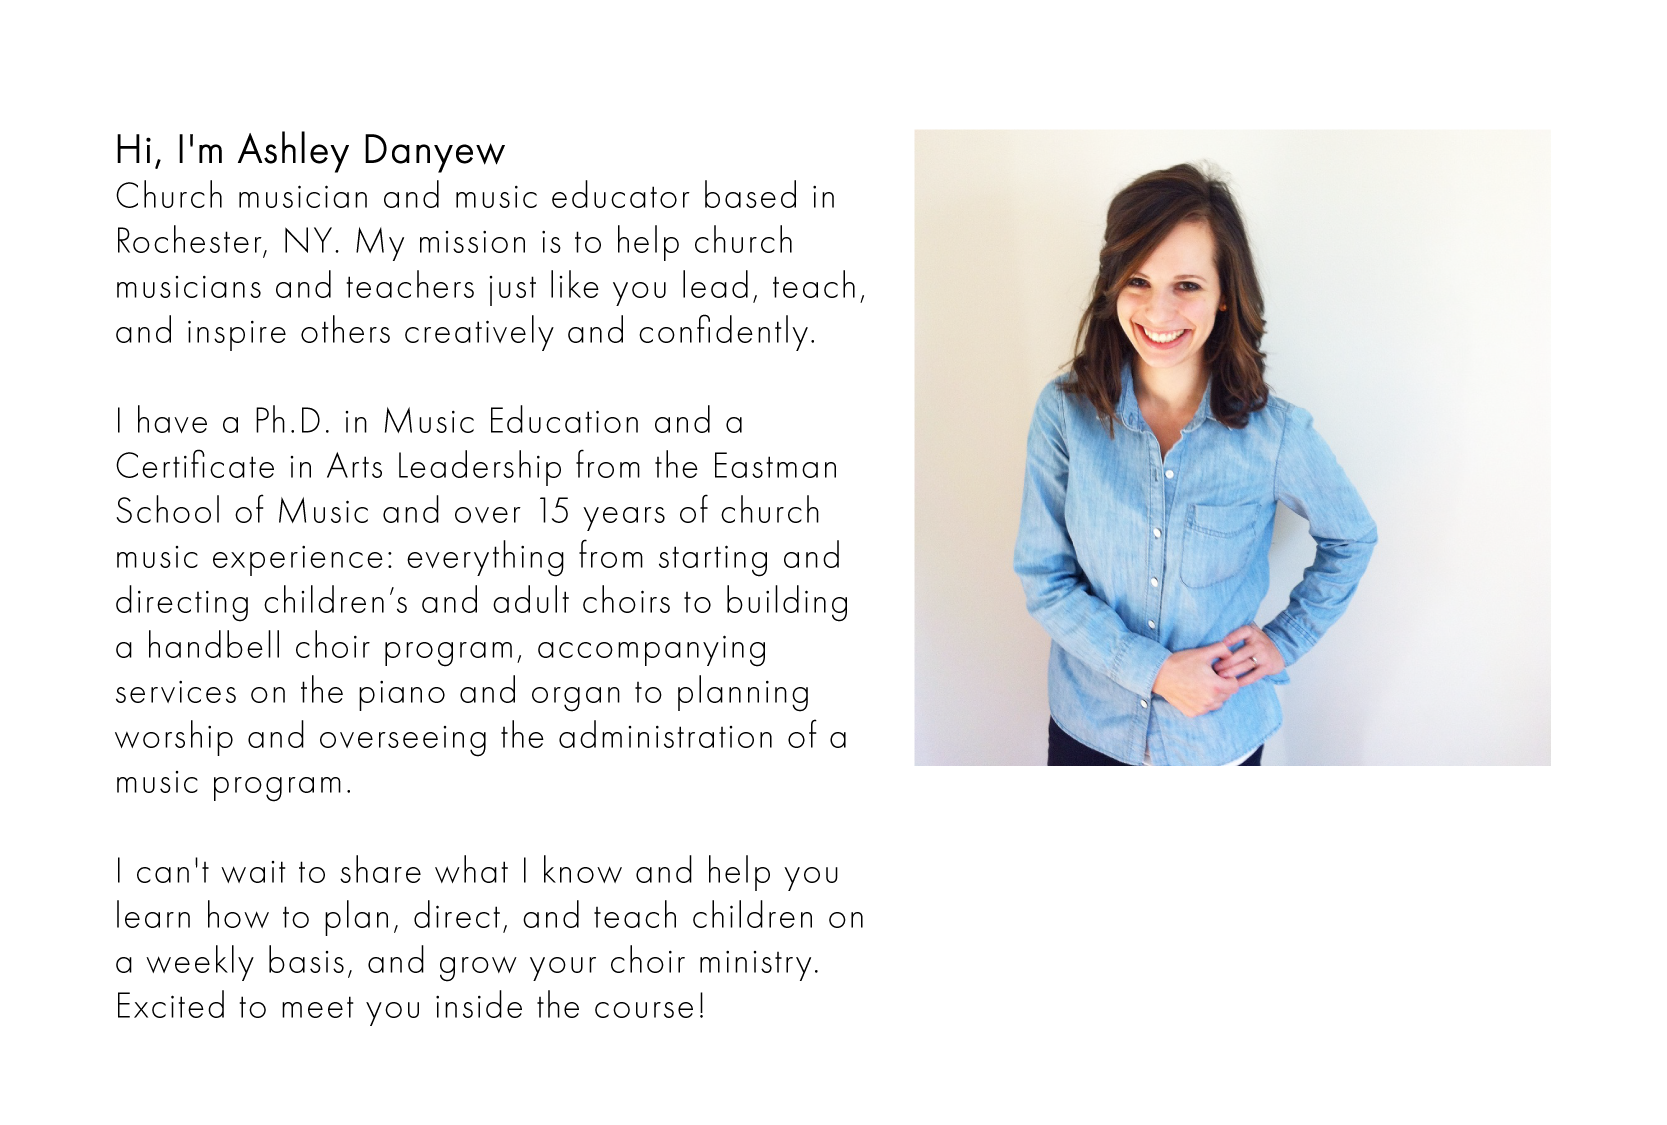 Ashley Danyew - church musician, music educator, writer, and creative entrepreneur